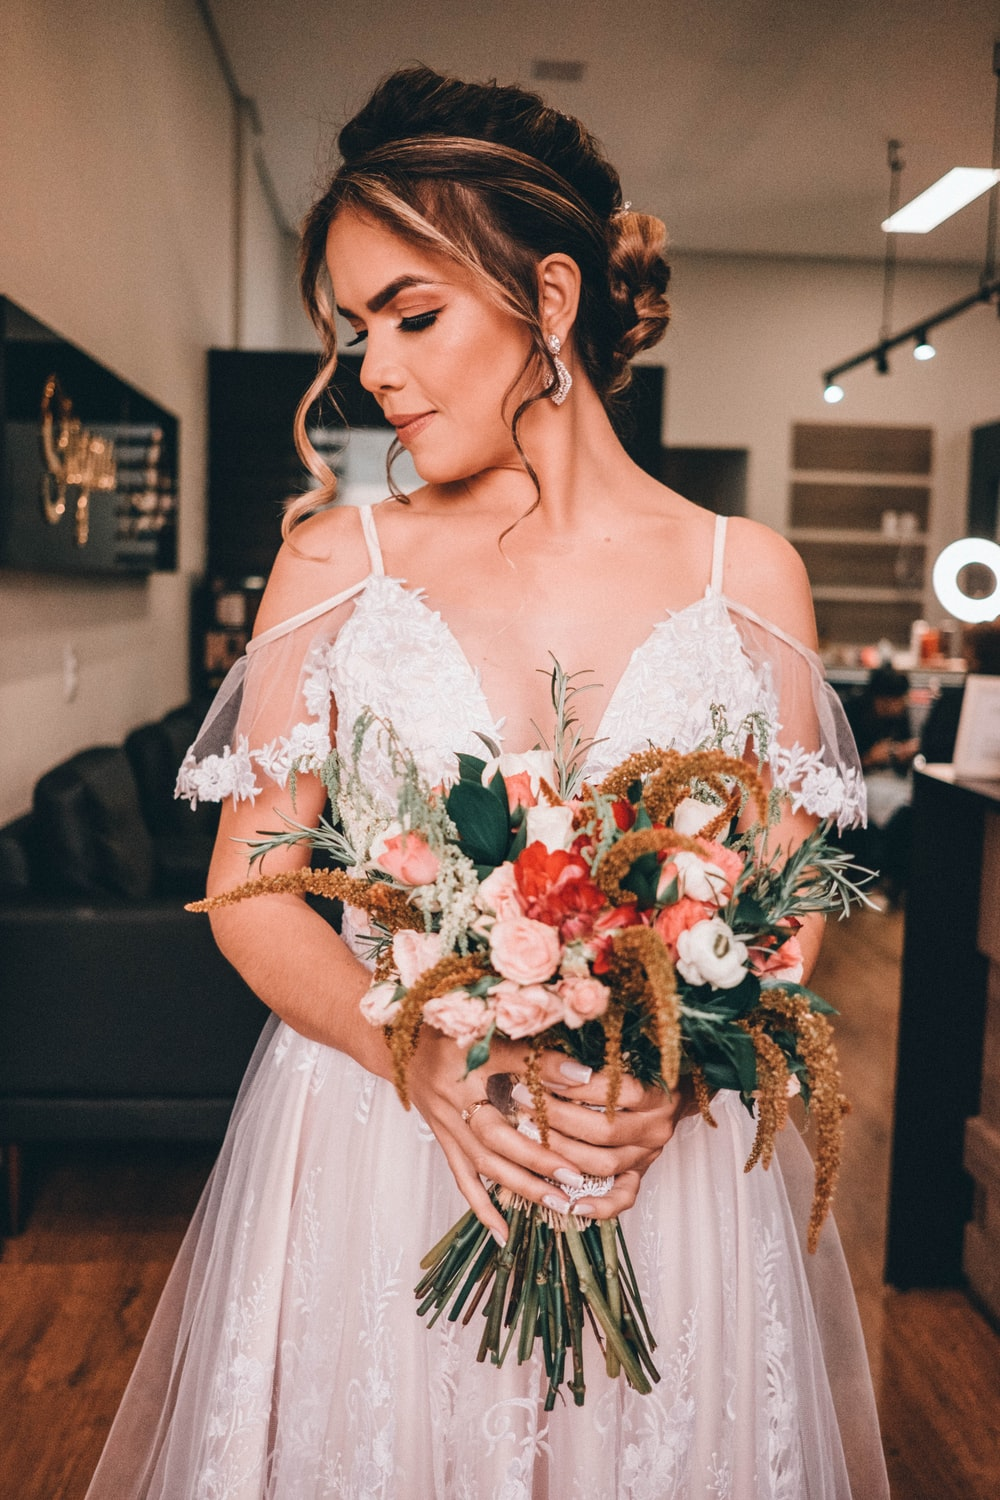 woman in white dress holding bouquet of red roses